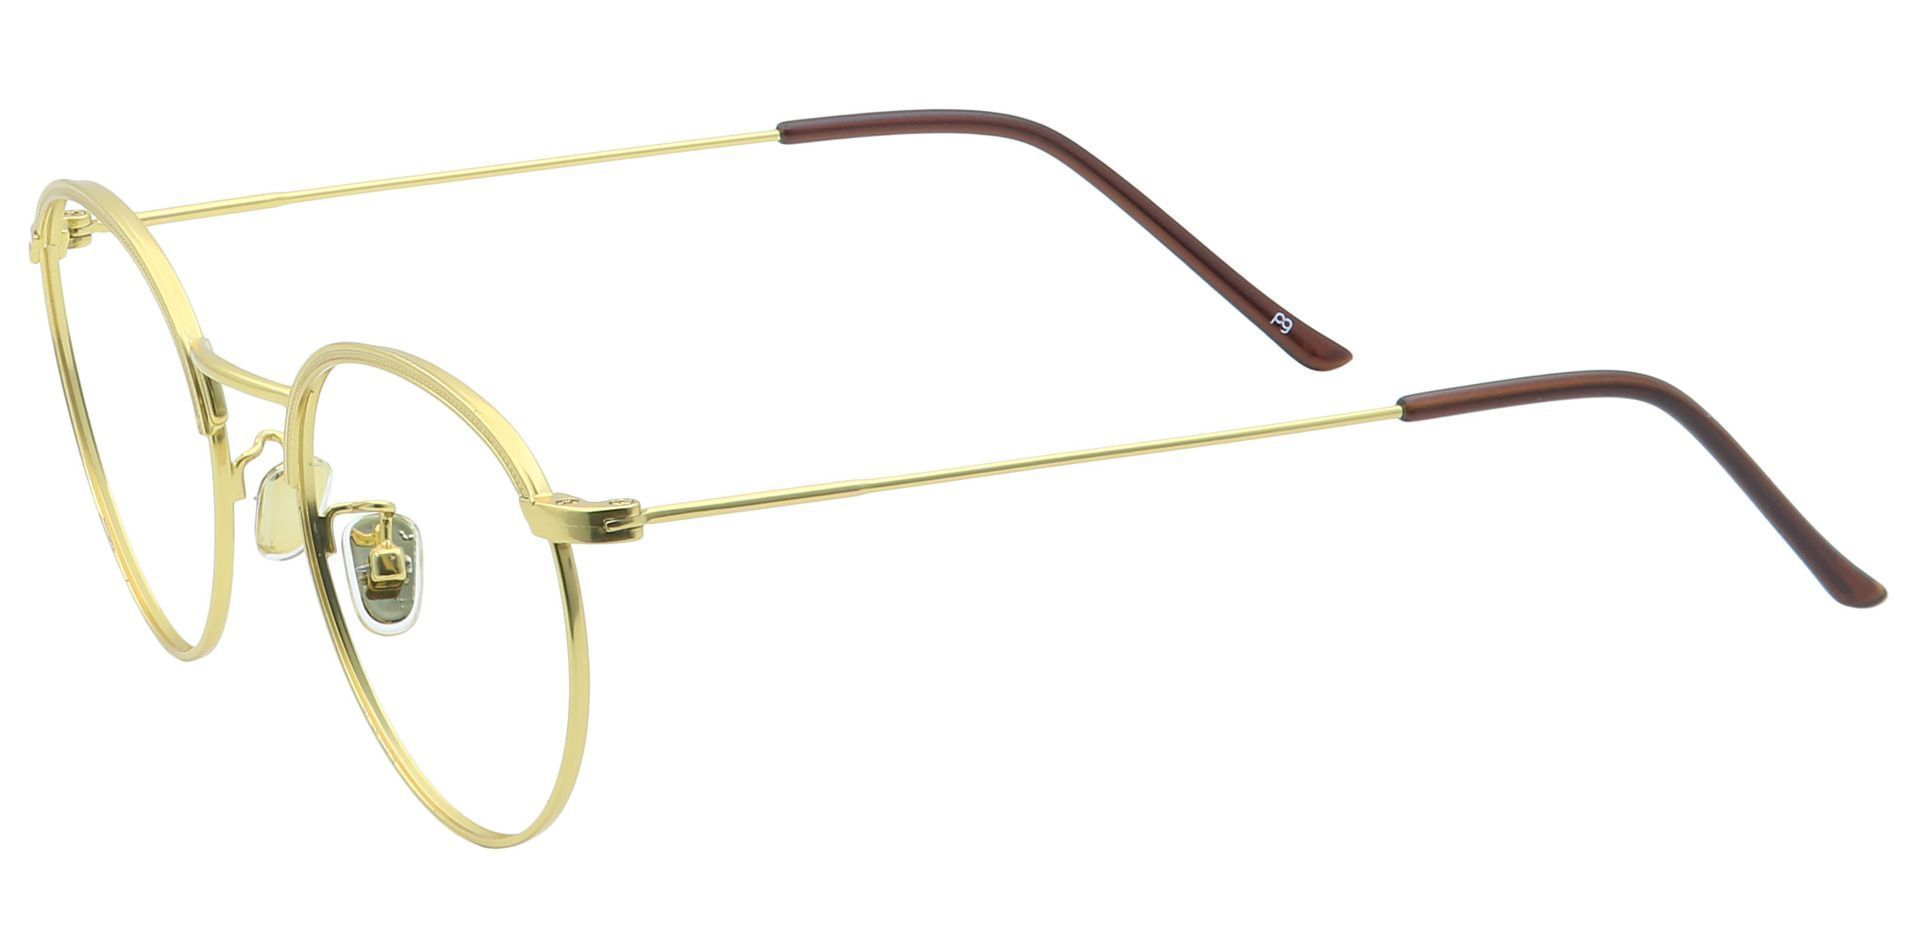 Cooper Oval Eyeglasses Frame - Yellow